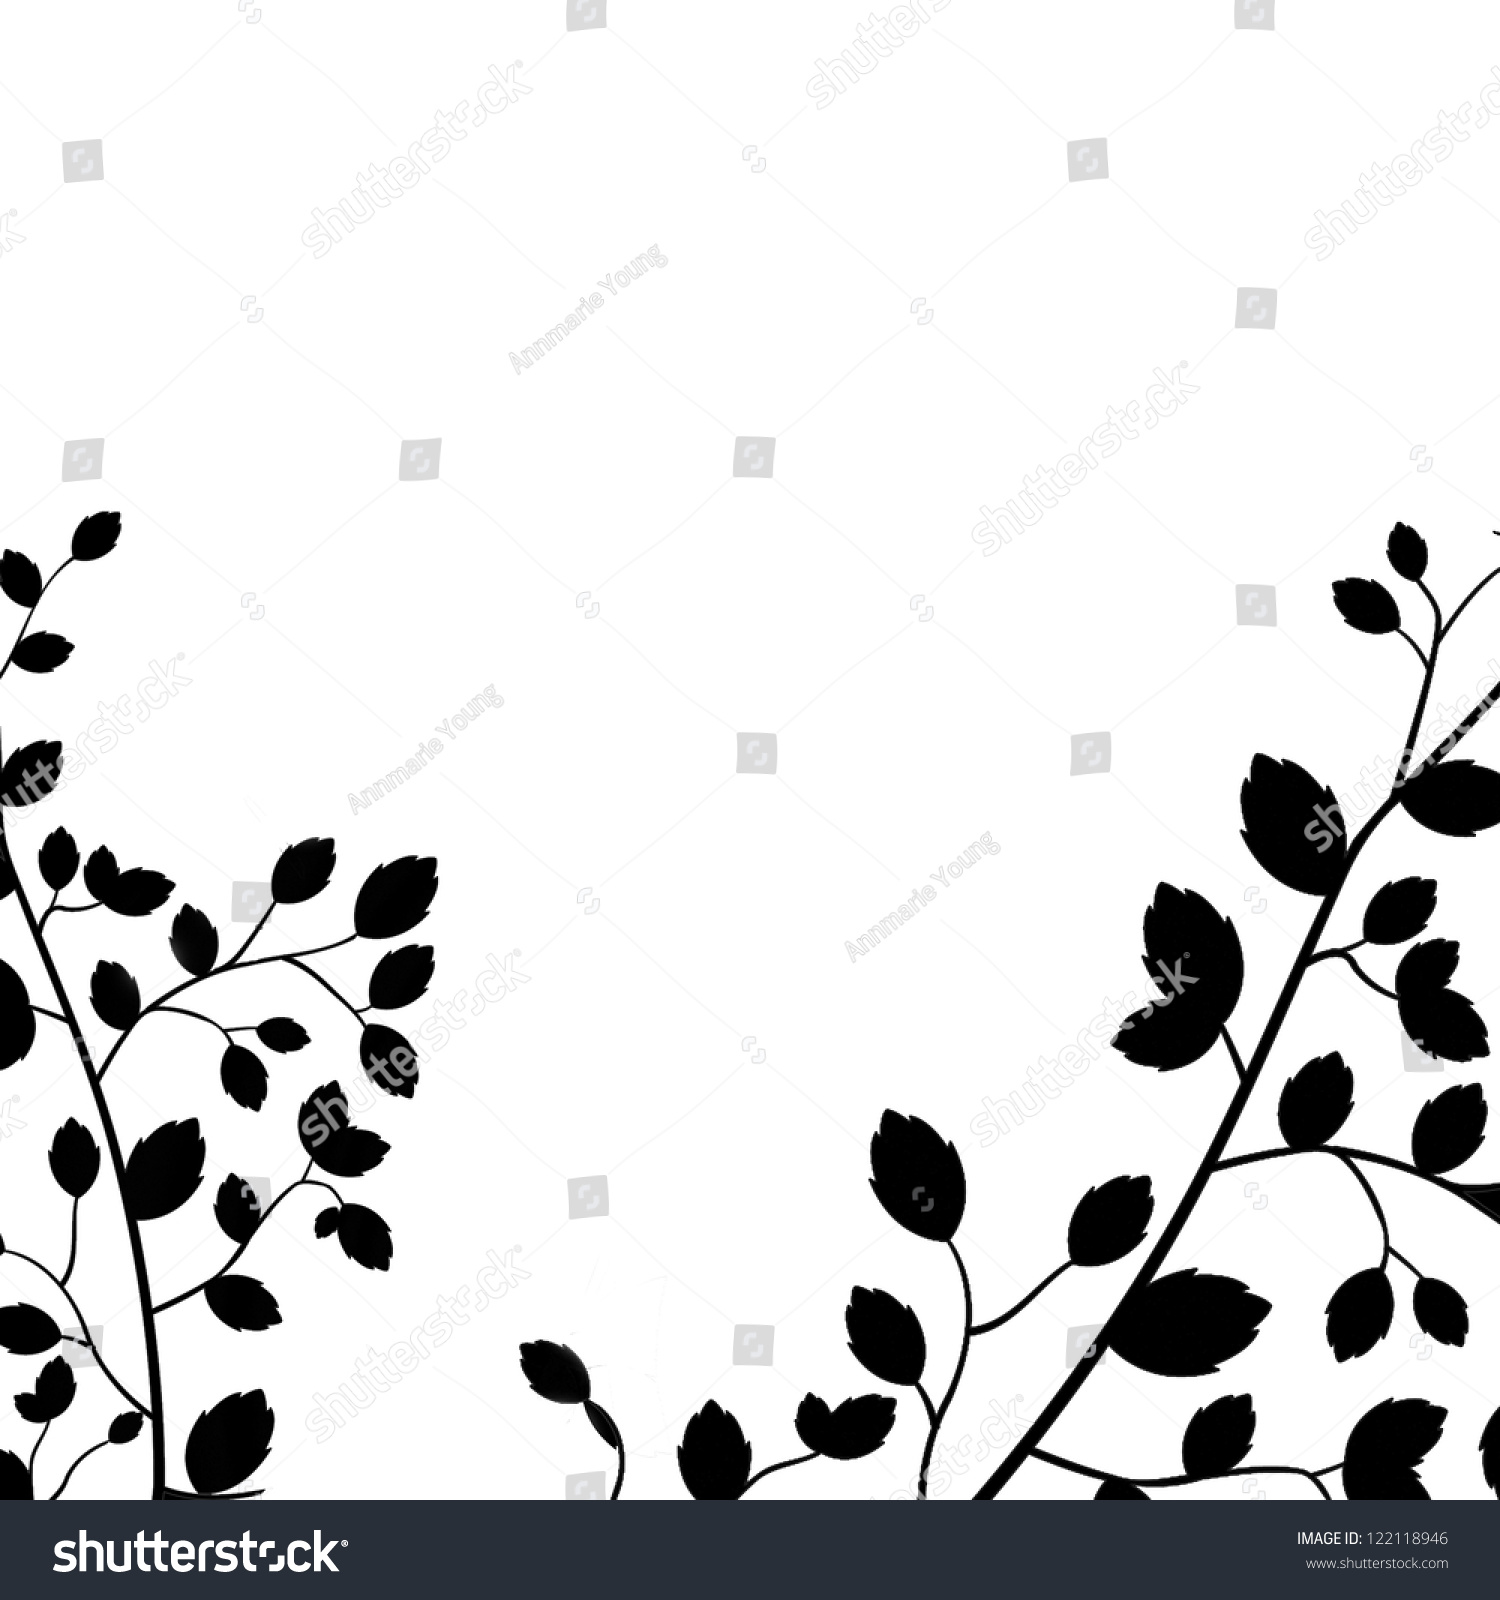 Strong Graphic Art Design Black White Stock Illustration 122118946 ...